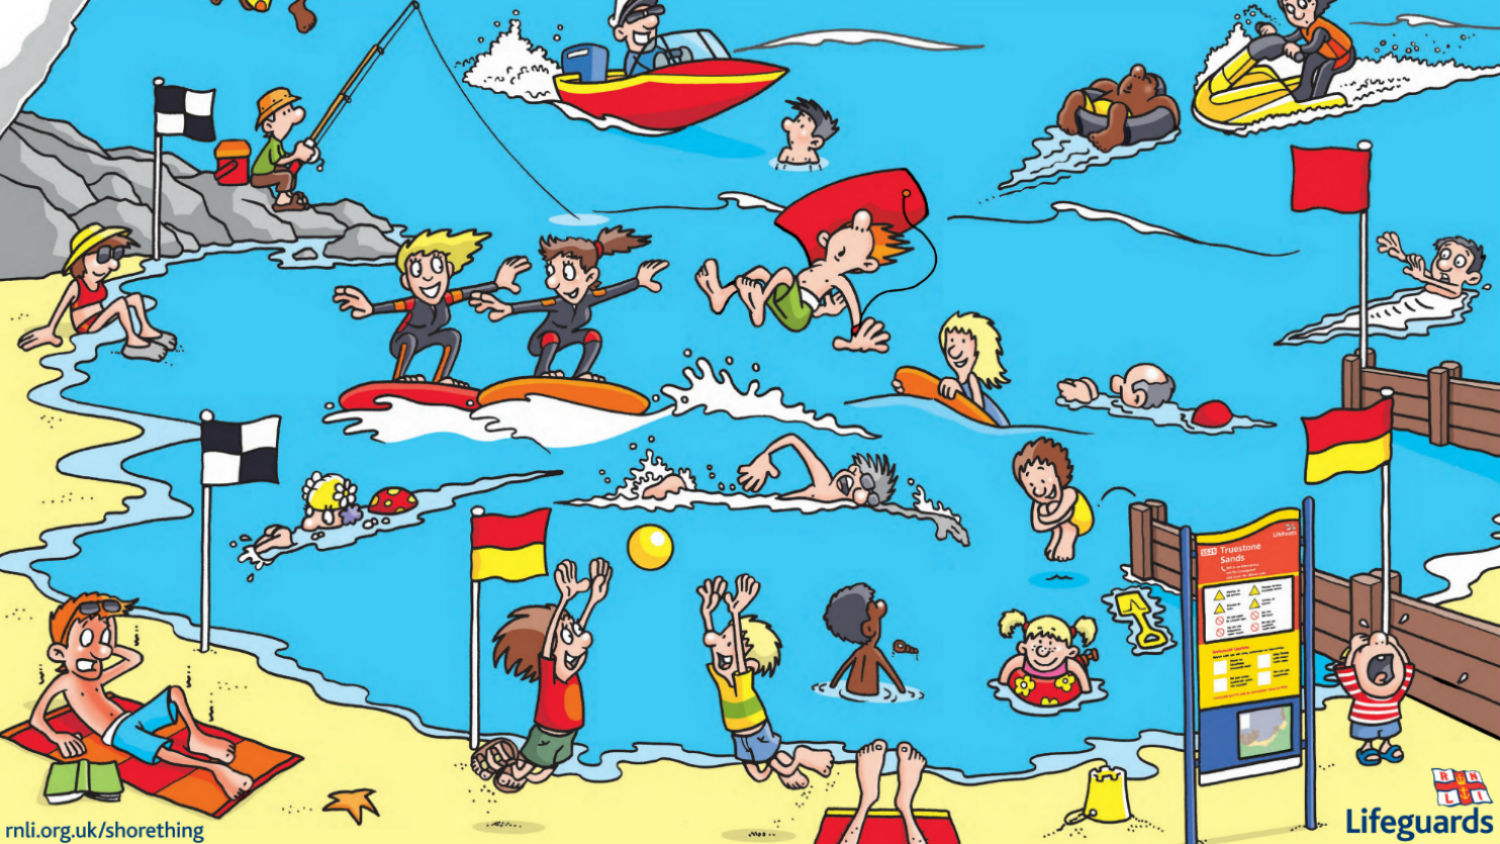 Free Rnli Activity Sheets, Posters And Colouring Sheets For Pupils